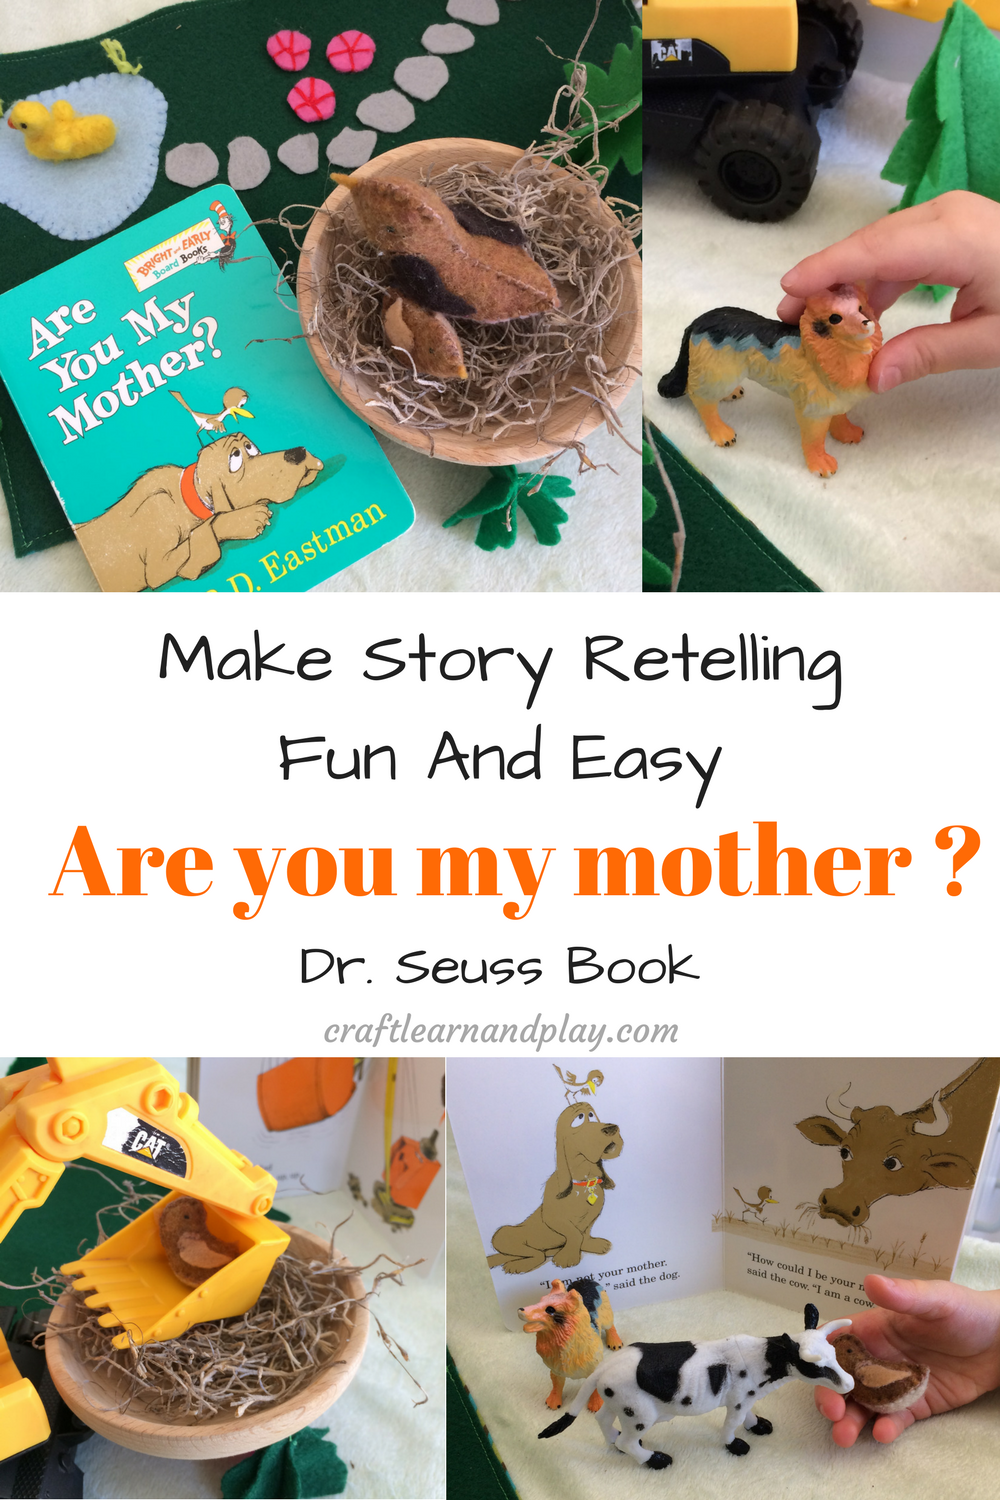 Are you my mother ? - Story retelling activities for preschool. Fun creative idea for kids with making felt bird mommy and baby. Click for free sewing pattern .